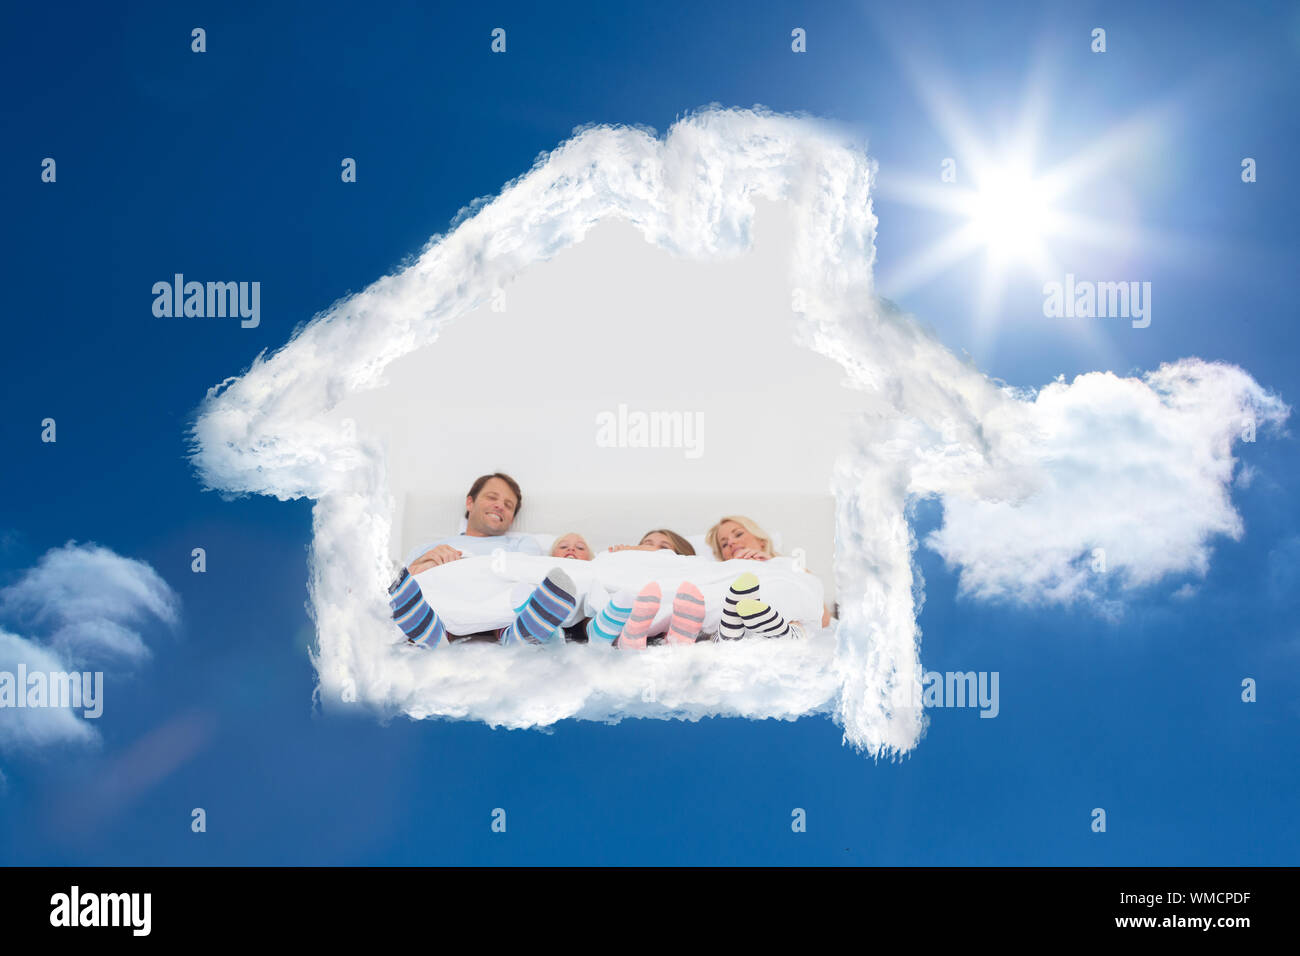 Family wearing stripey socks against bright blue sky with clouds Stock Photo